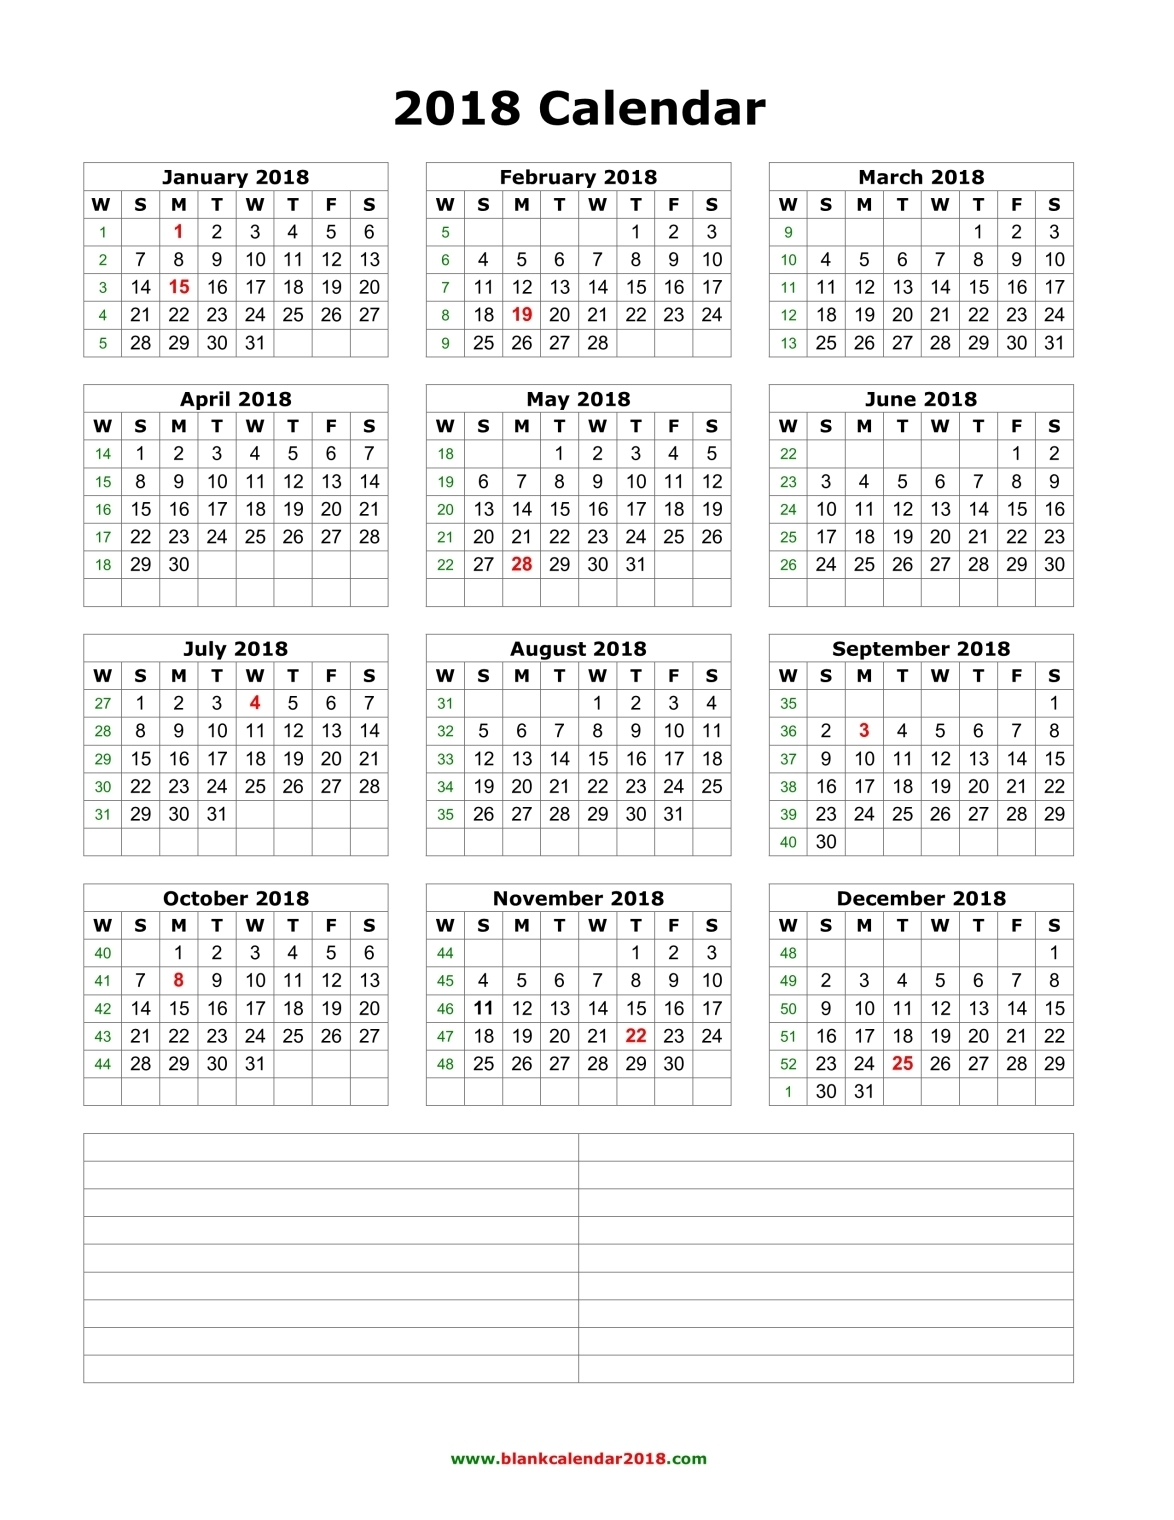 2017 2018 2019 calendar 4 three year printable pdf calendars